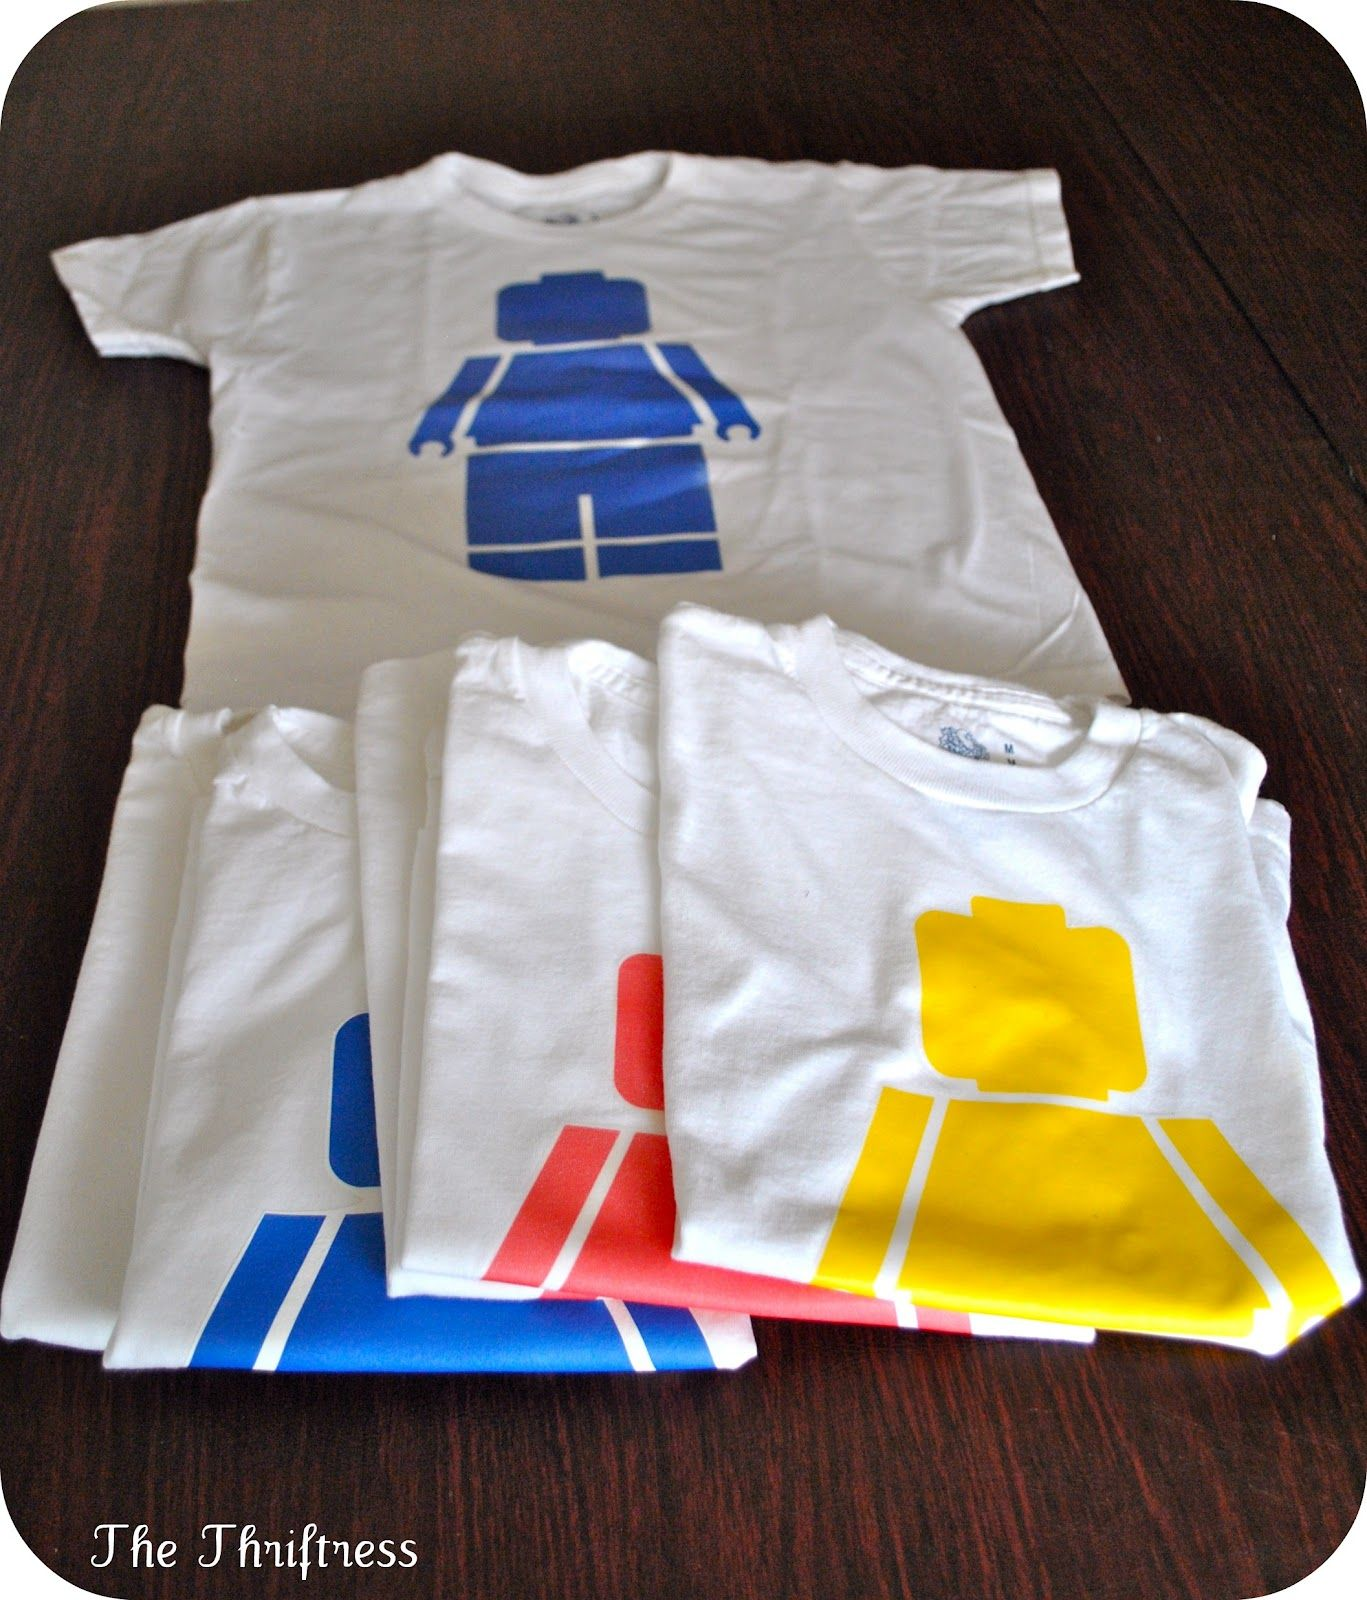 Design t shirt transfer template - Lego T Shirt Using Printable Heat Transfers This Is My Favorite Way To Make